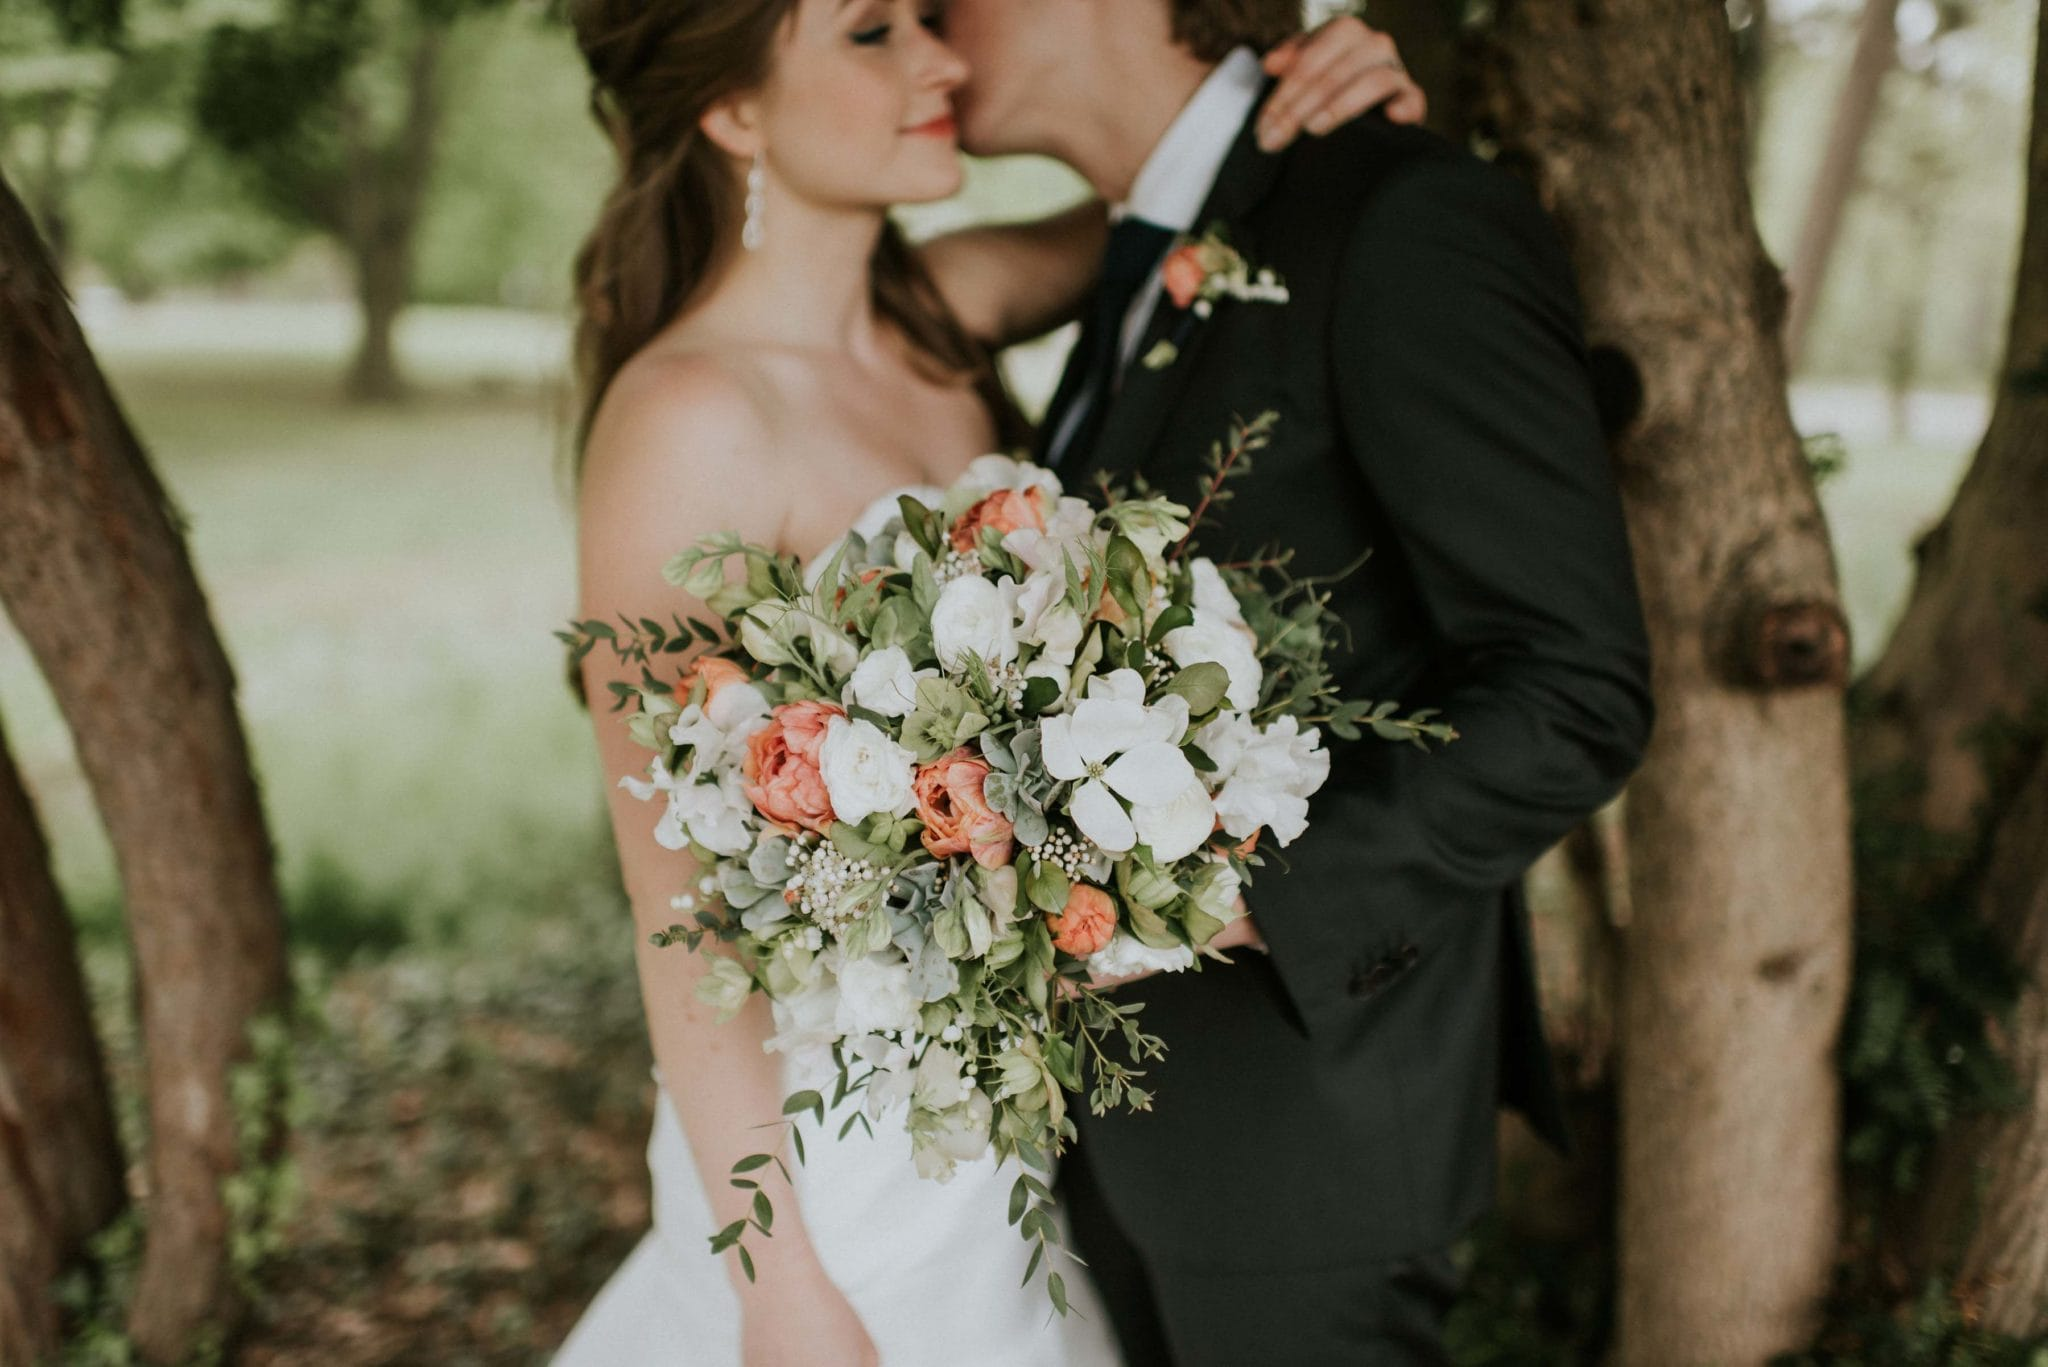 Wedding Planning Services | Full-Service Wedding Planning | The Styled Bride